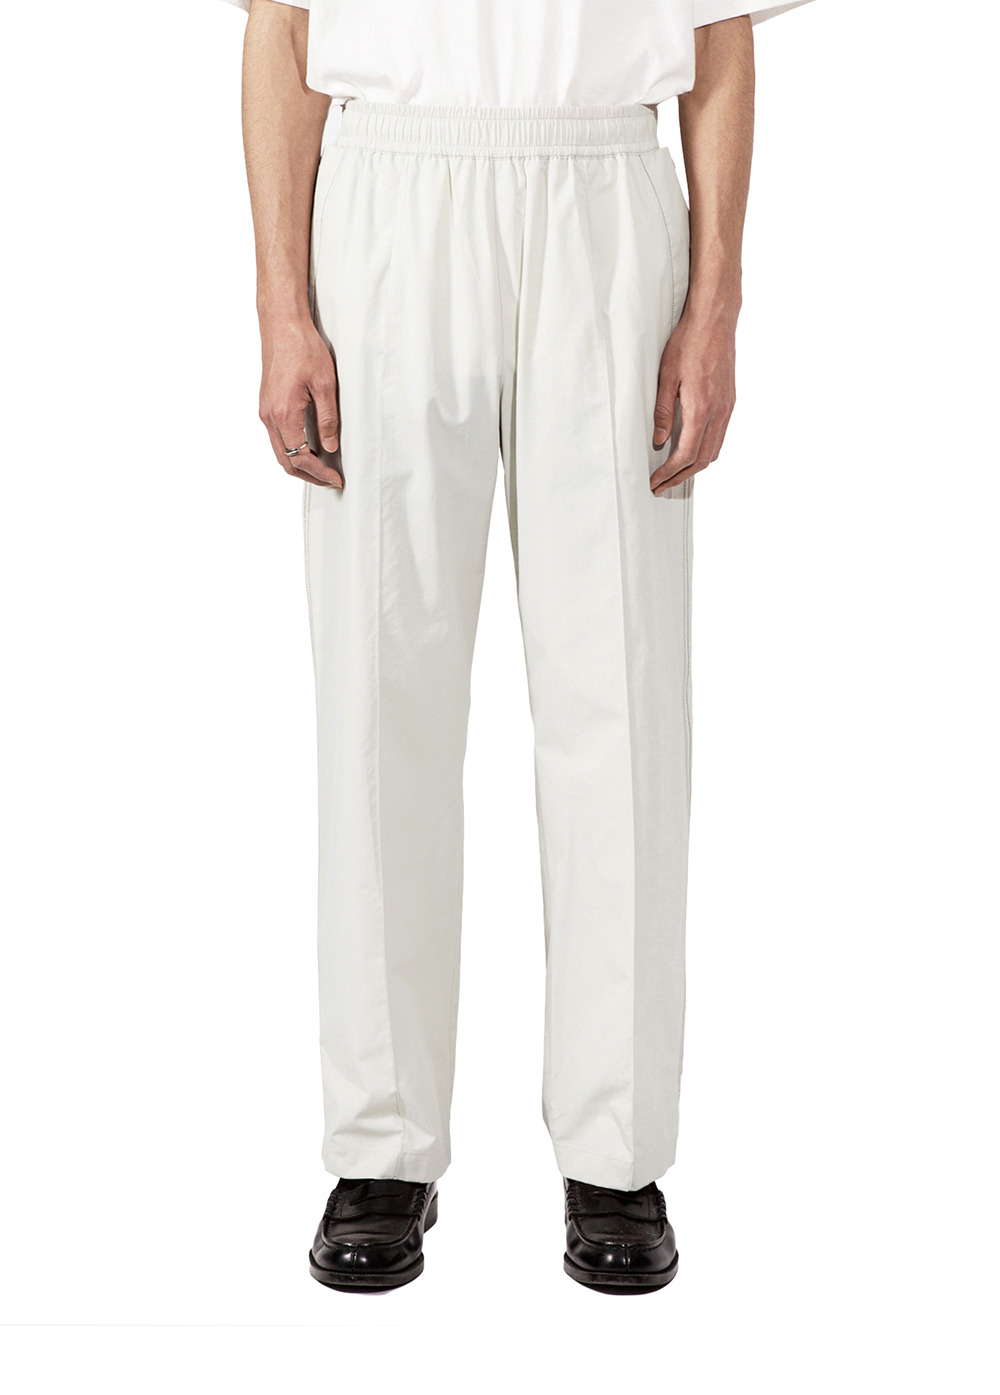 STITCH POINT PINTUCK PANTS ivory